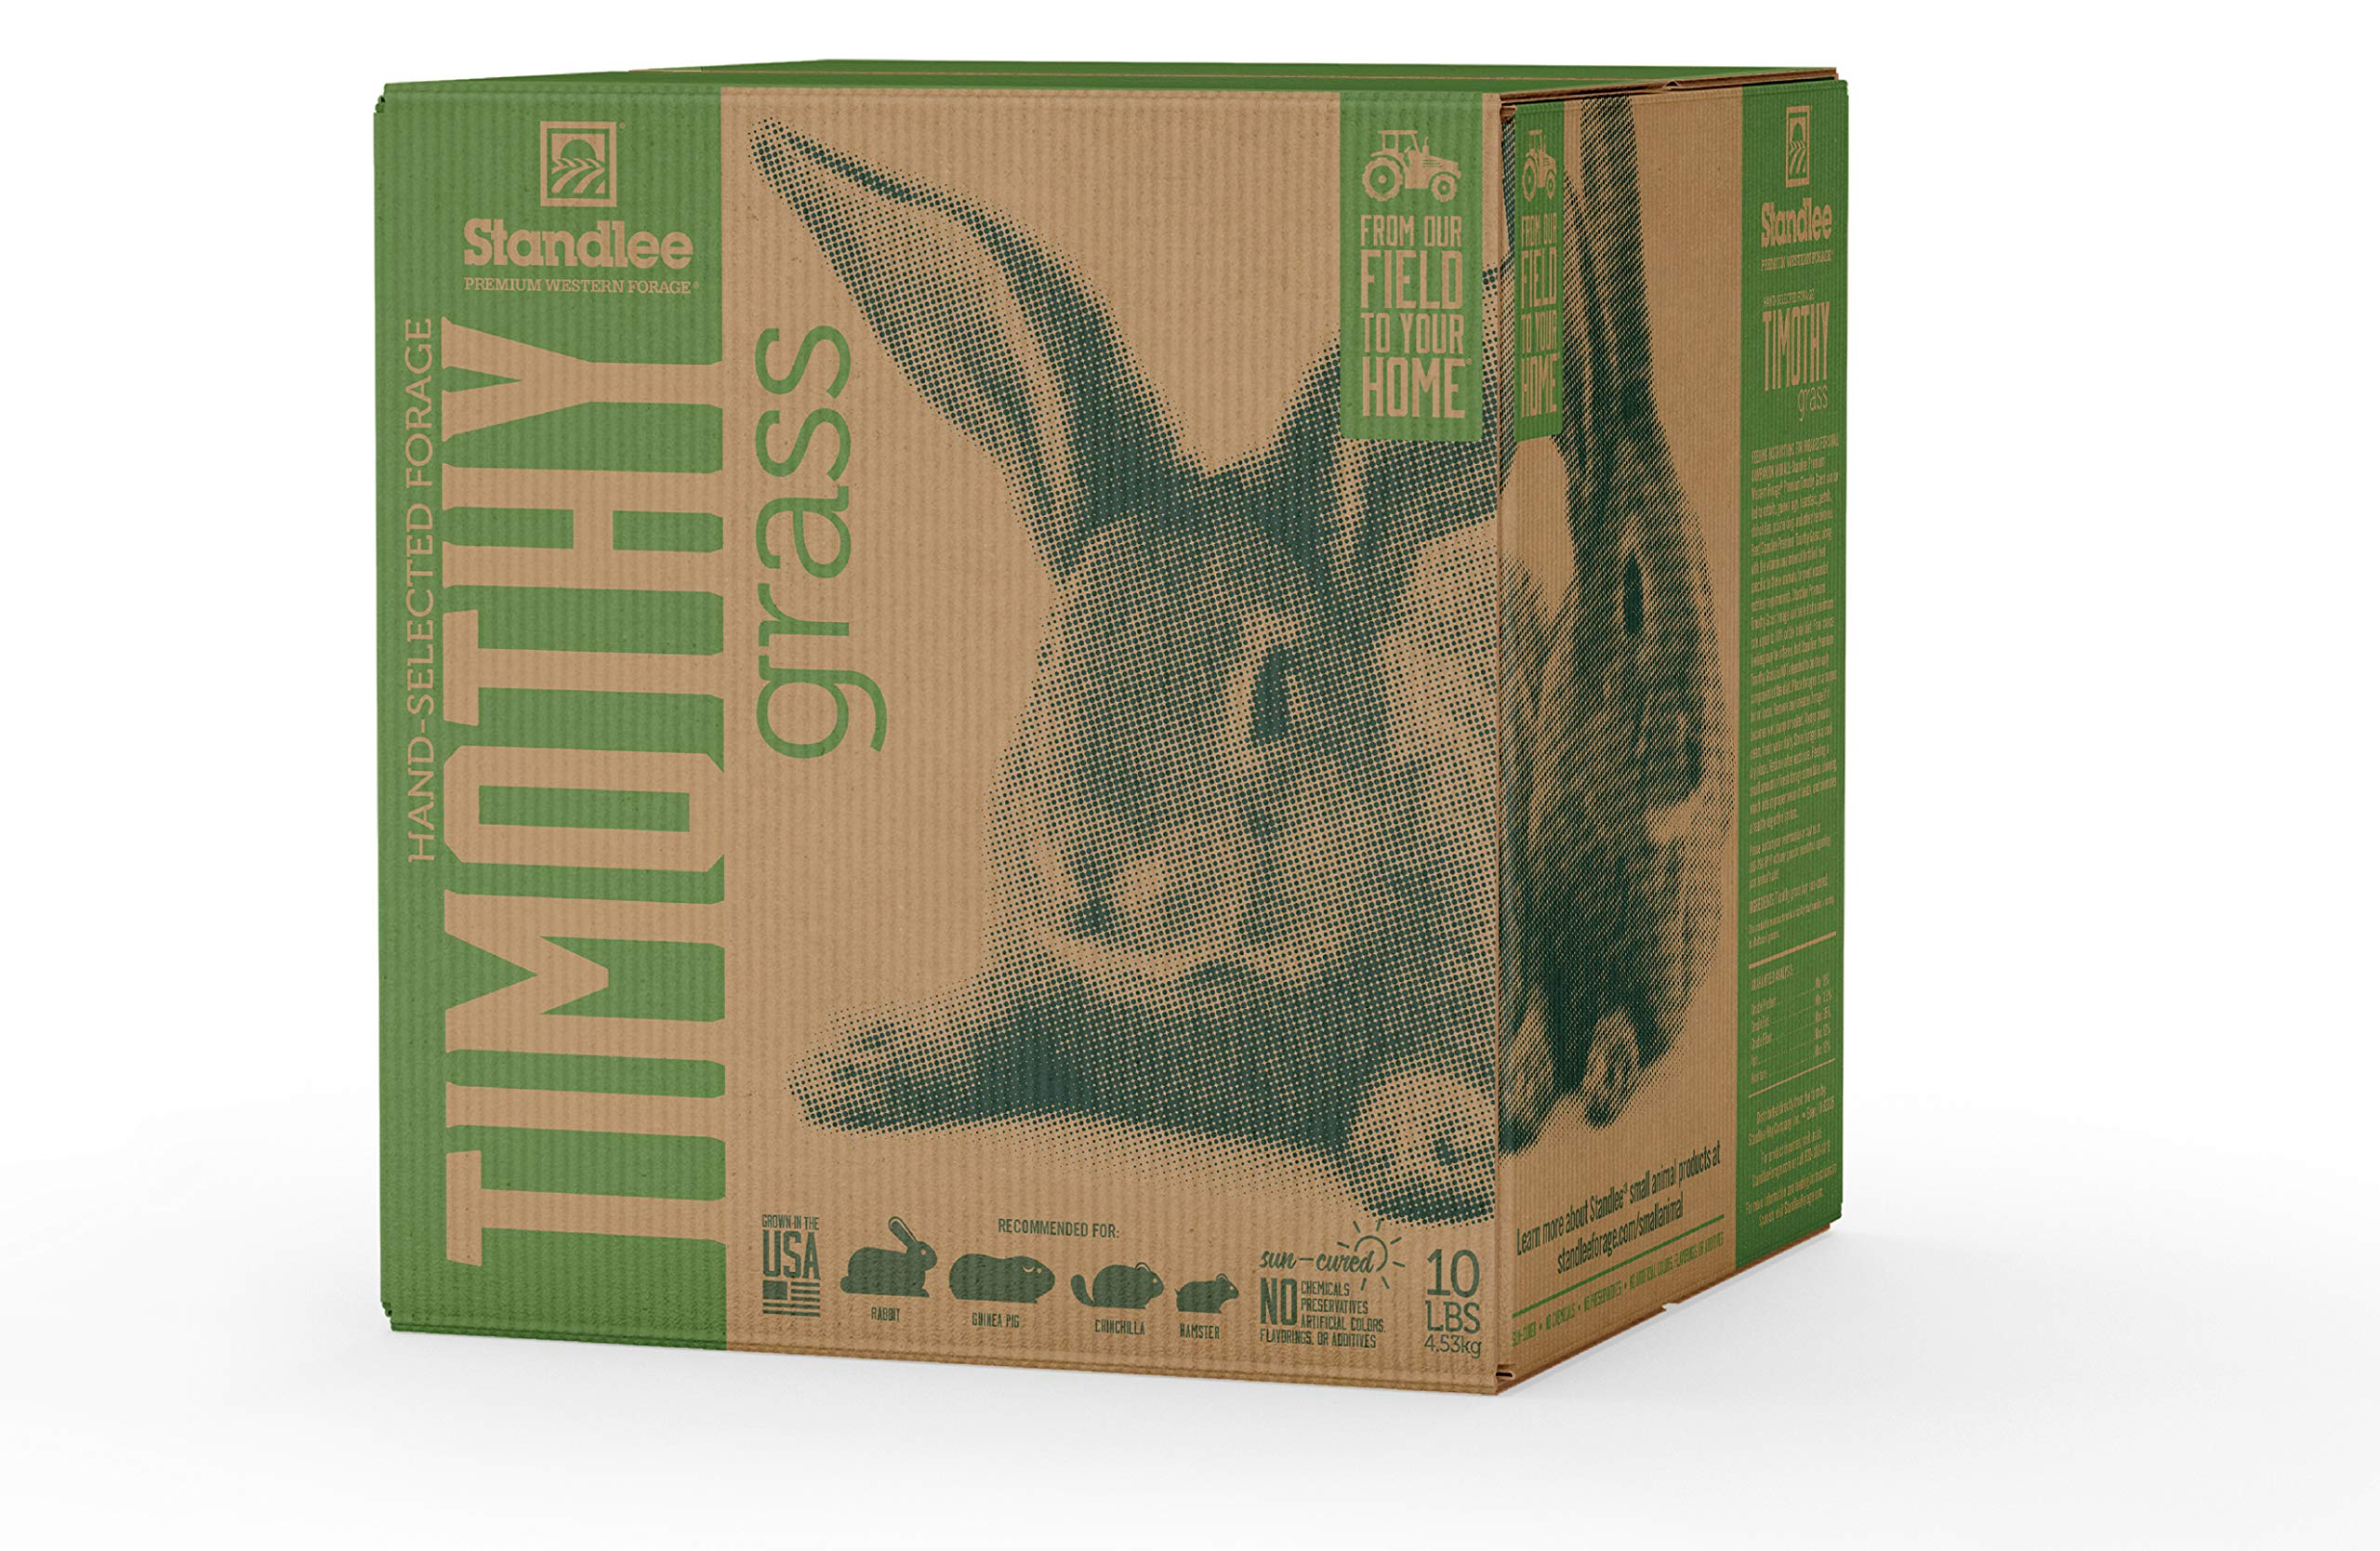 STANDLEE Premium Timothy Grass Hand-Selected Forage, 10lb Box by Standlee Hay Company (Image #1)